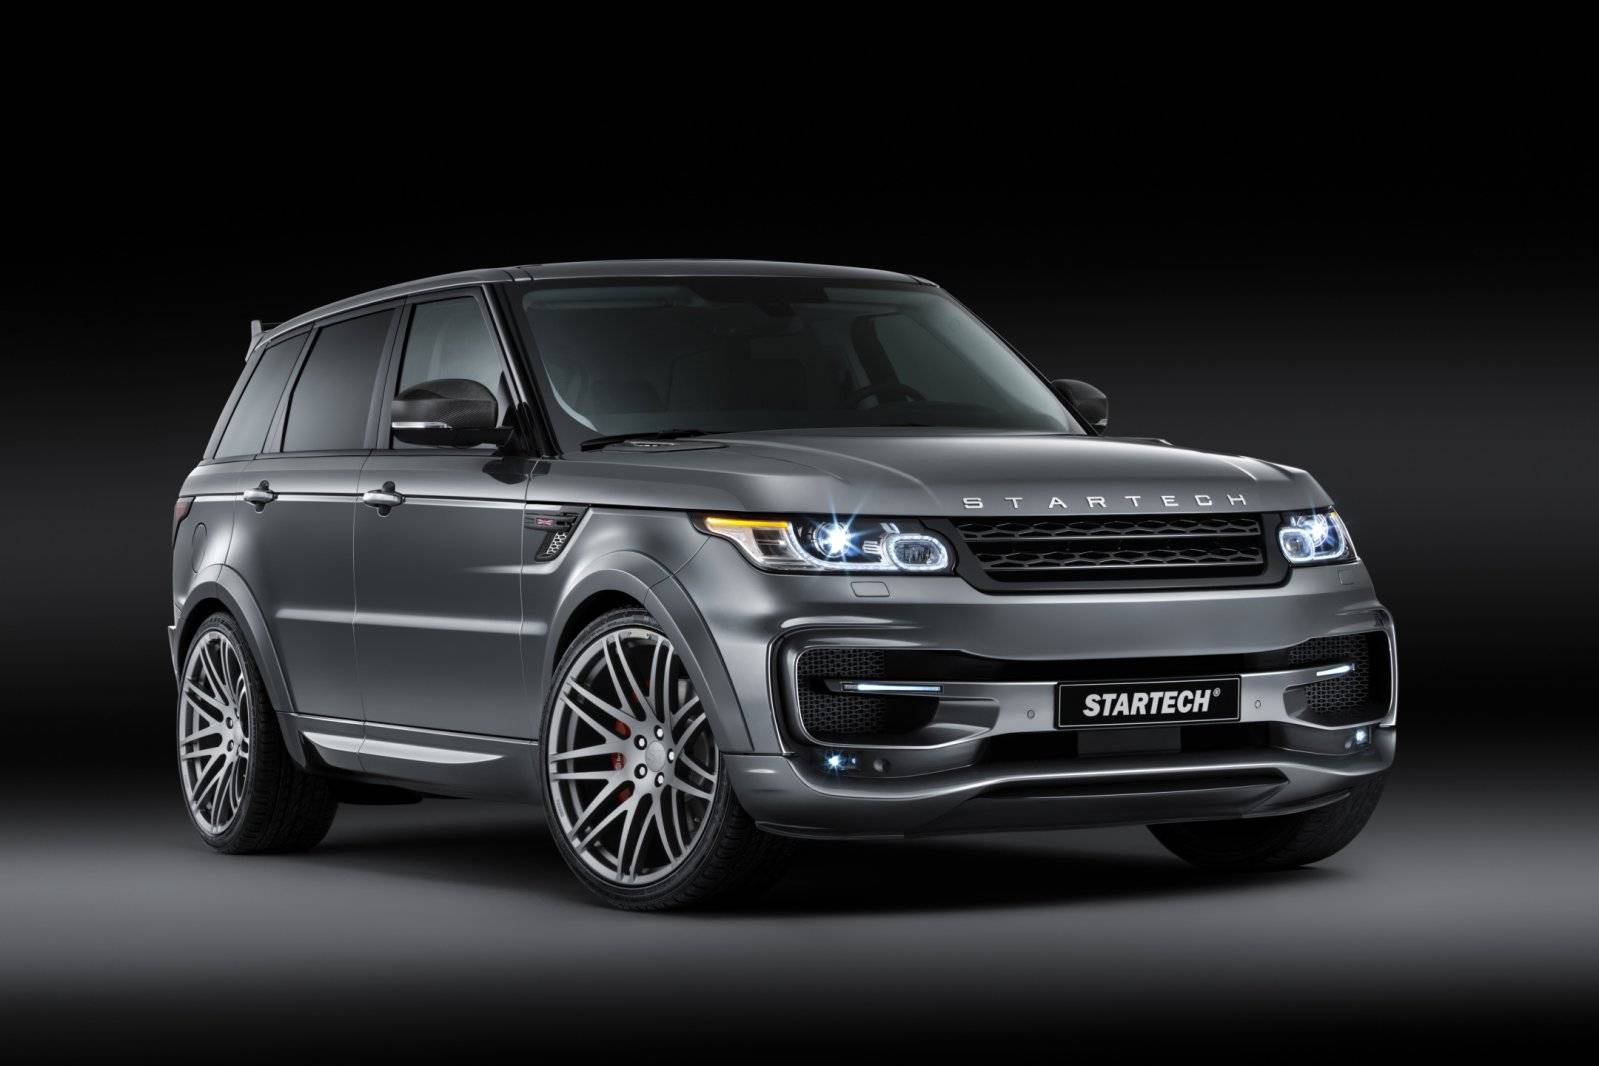 breder dan breed startech range rover sport widebody tuning styling. Black Bedroom Furniture Sets. Home Design Ideas